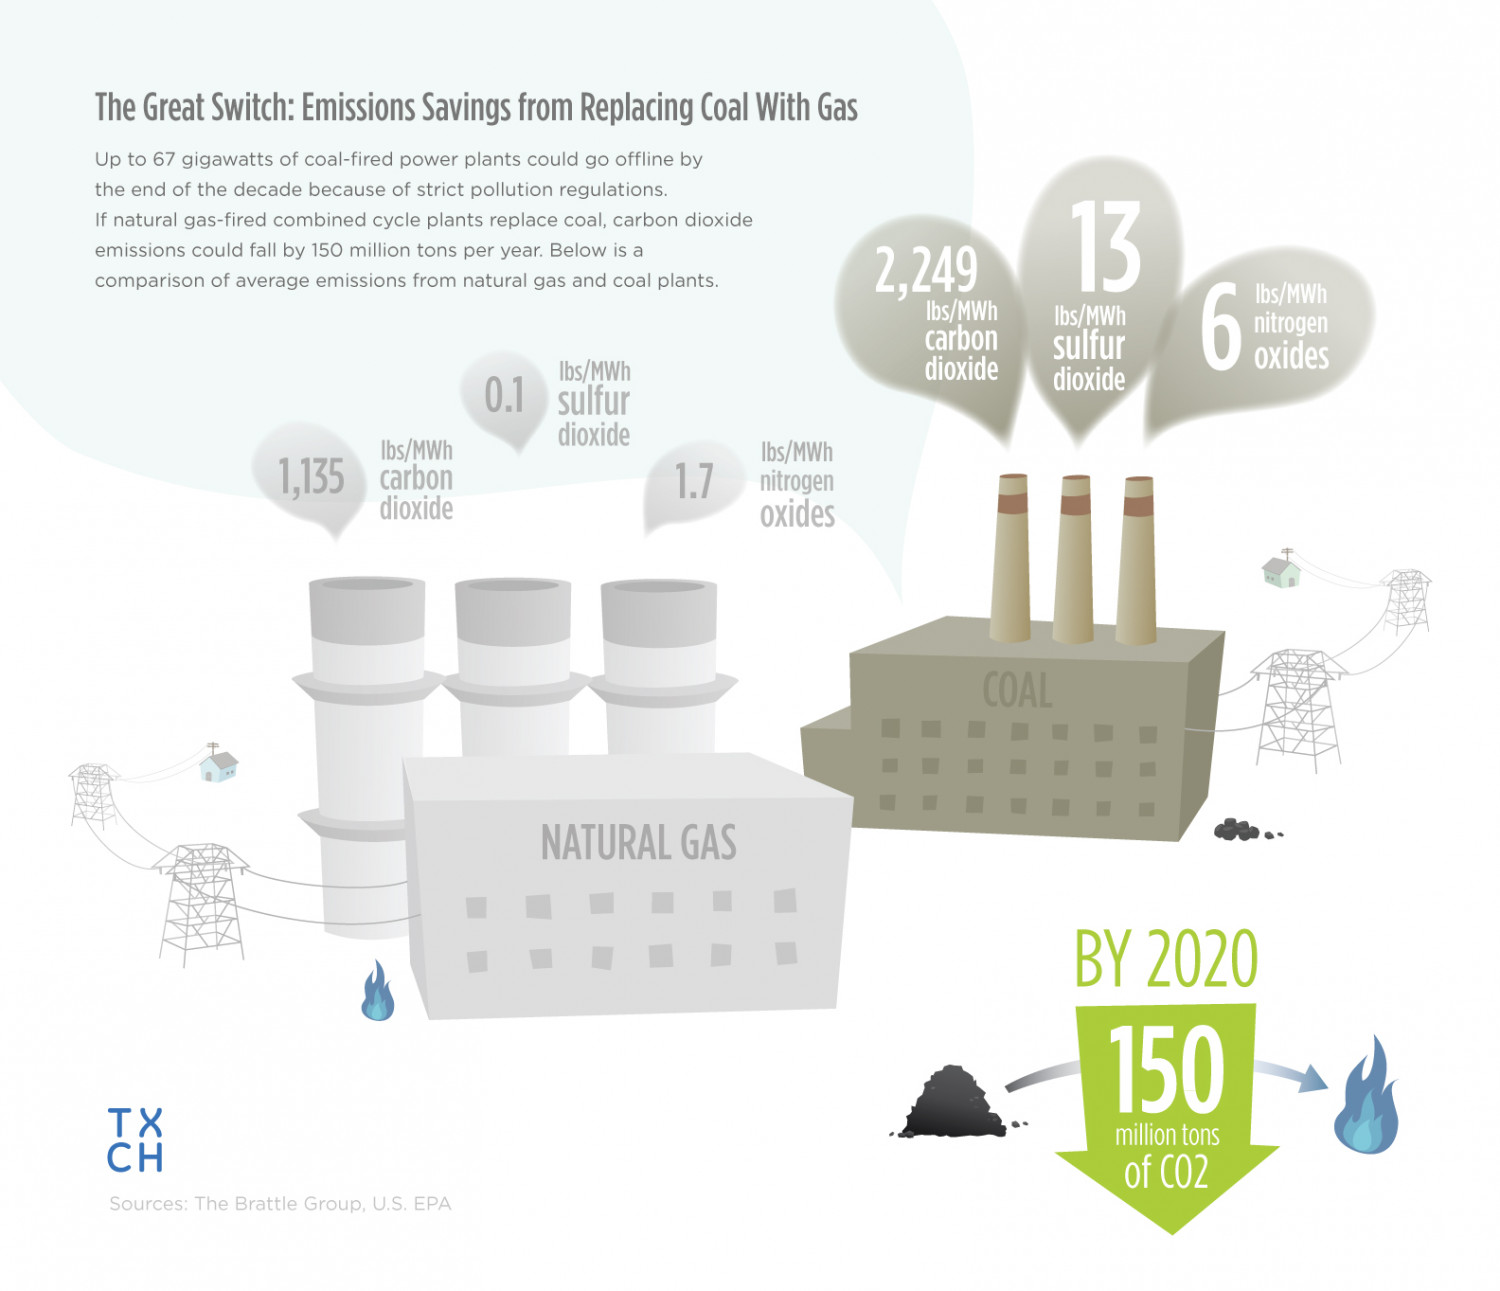 Emissions Savings from Switching Coal with Gas Infographic